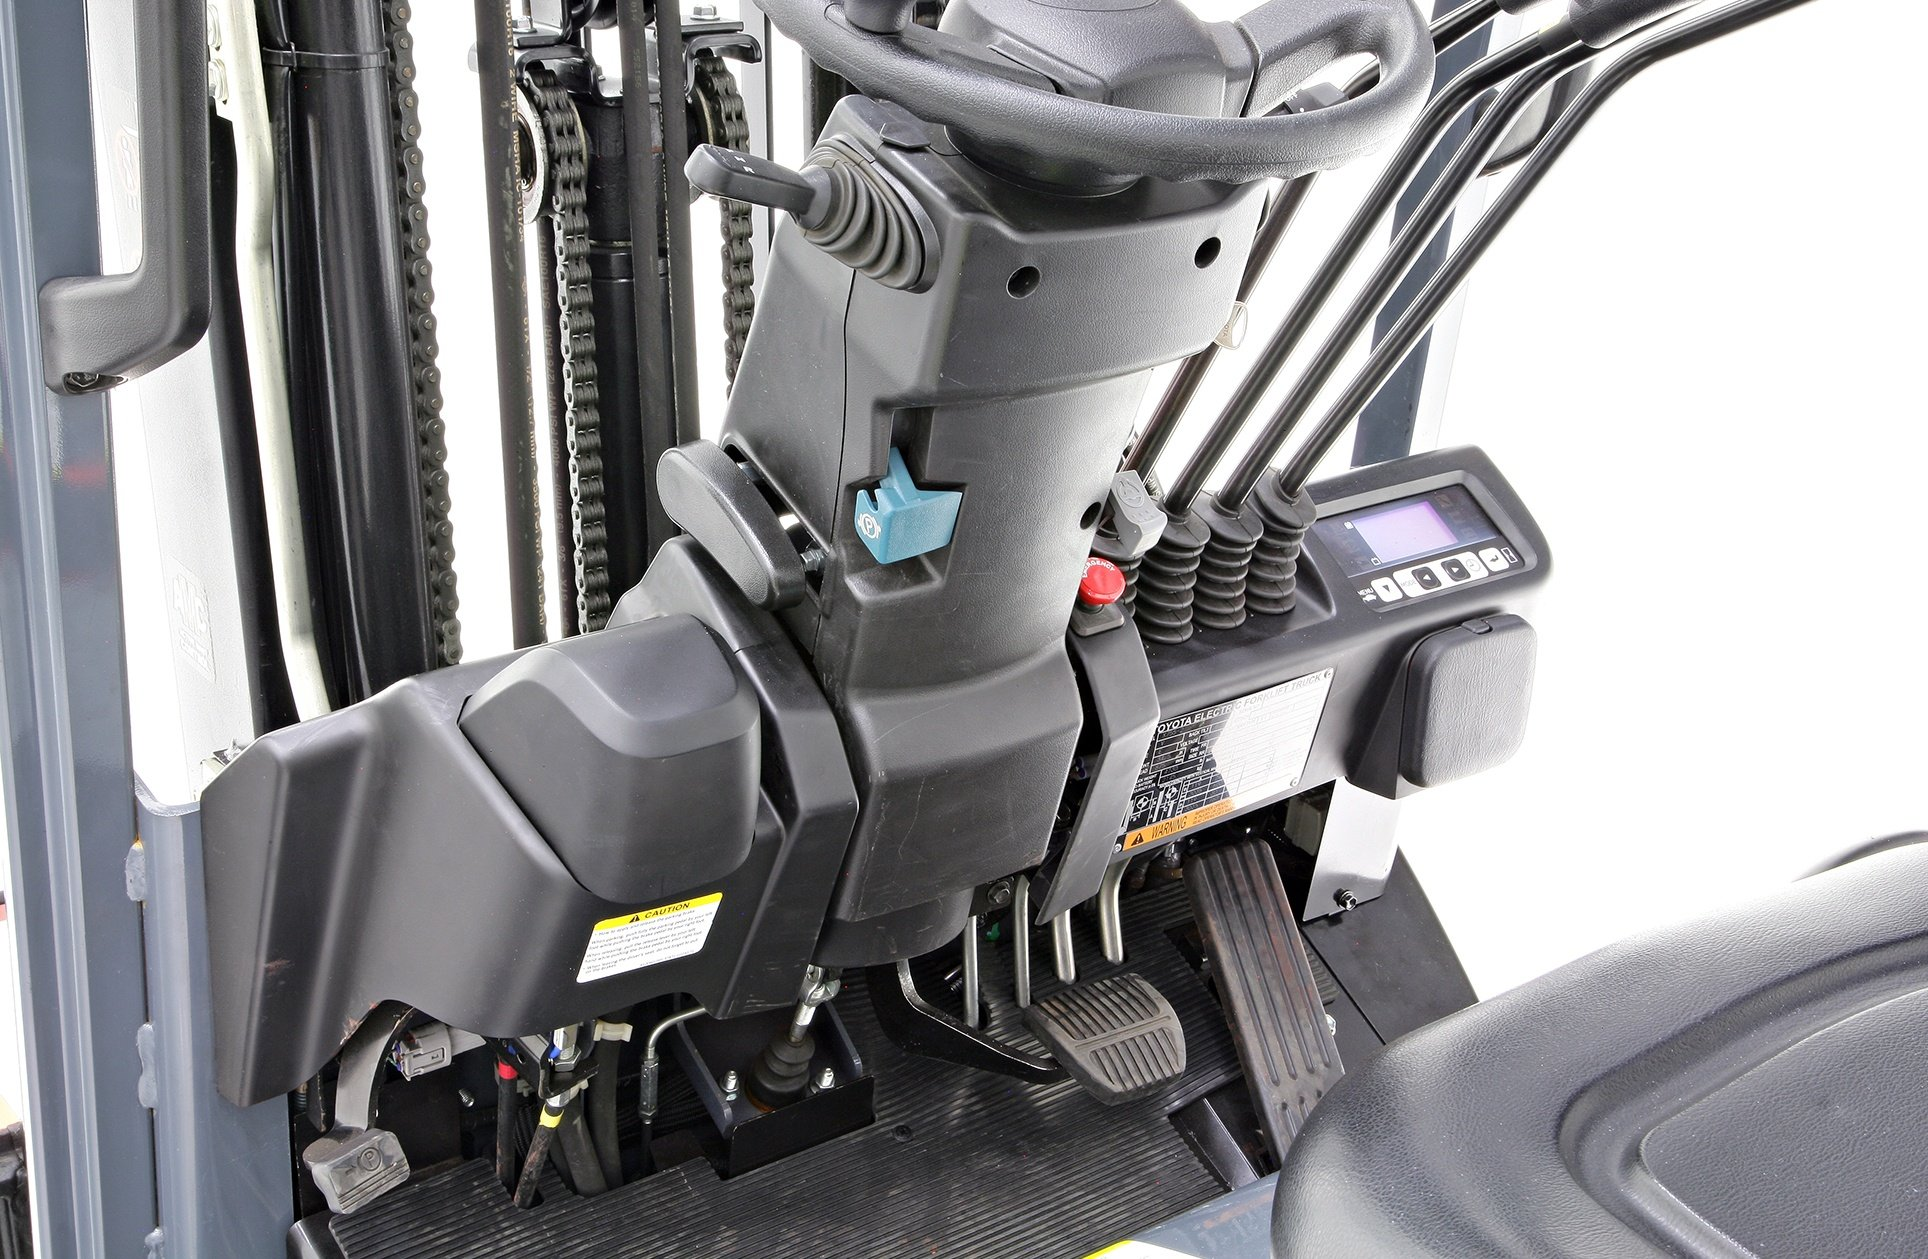 Toyota 3-Wheel Electric Forklift durability